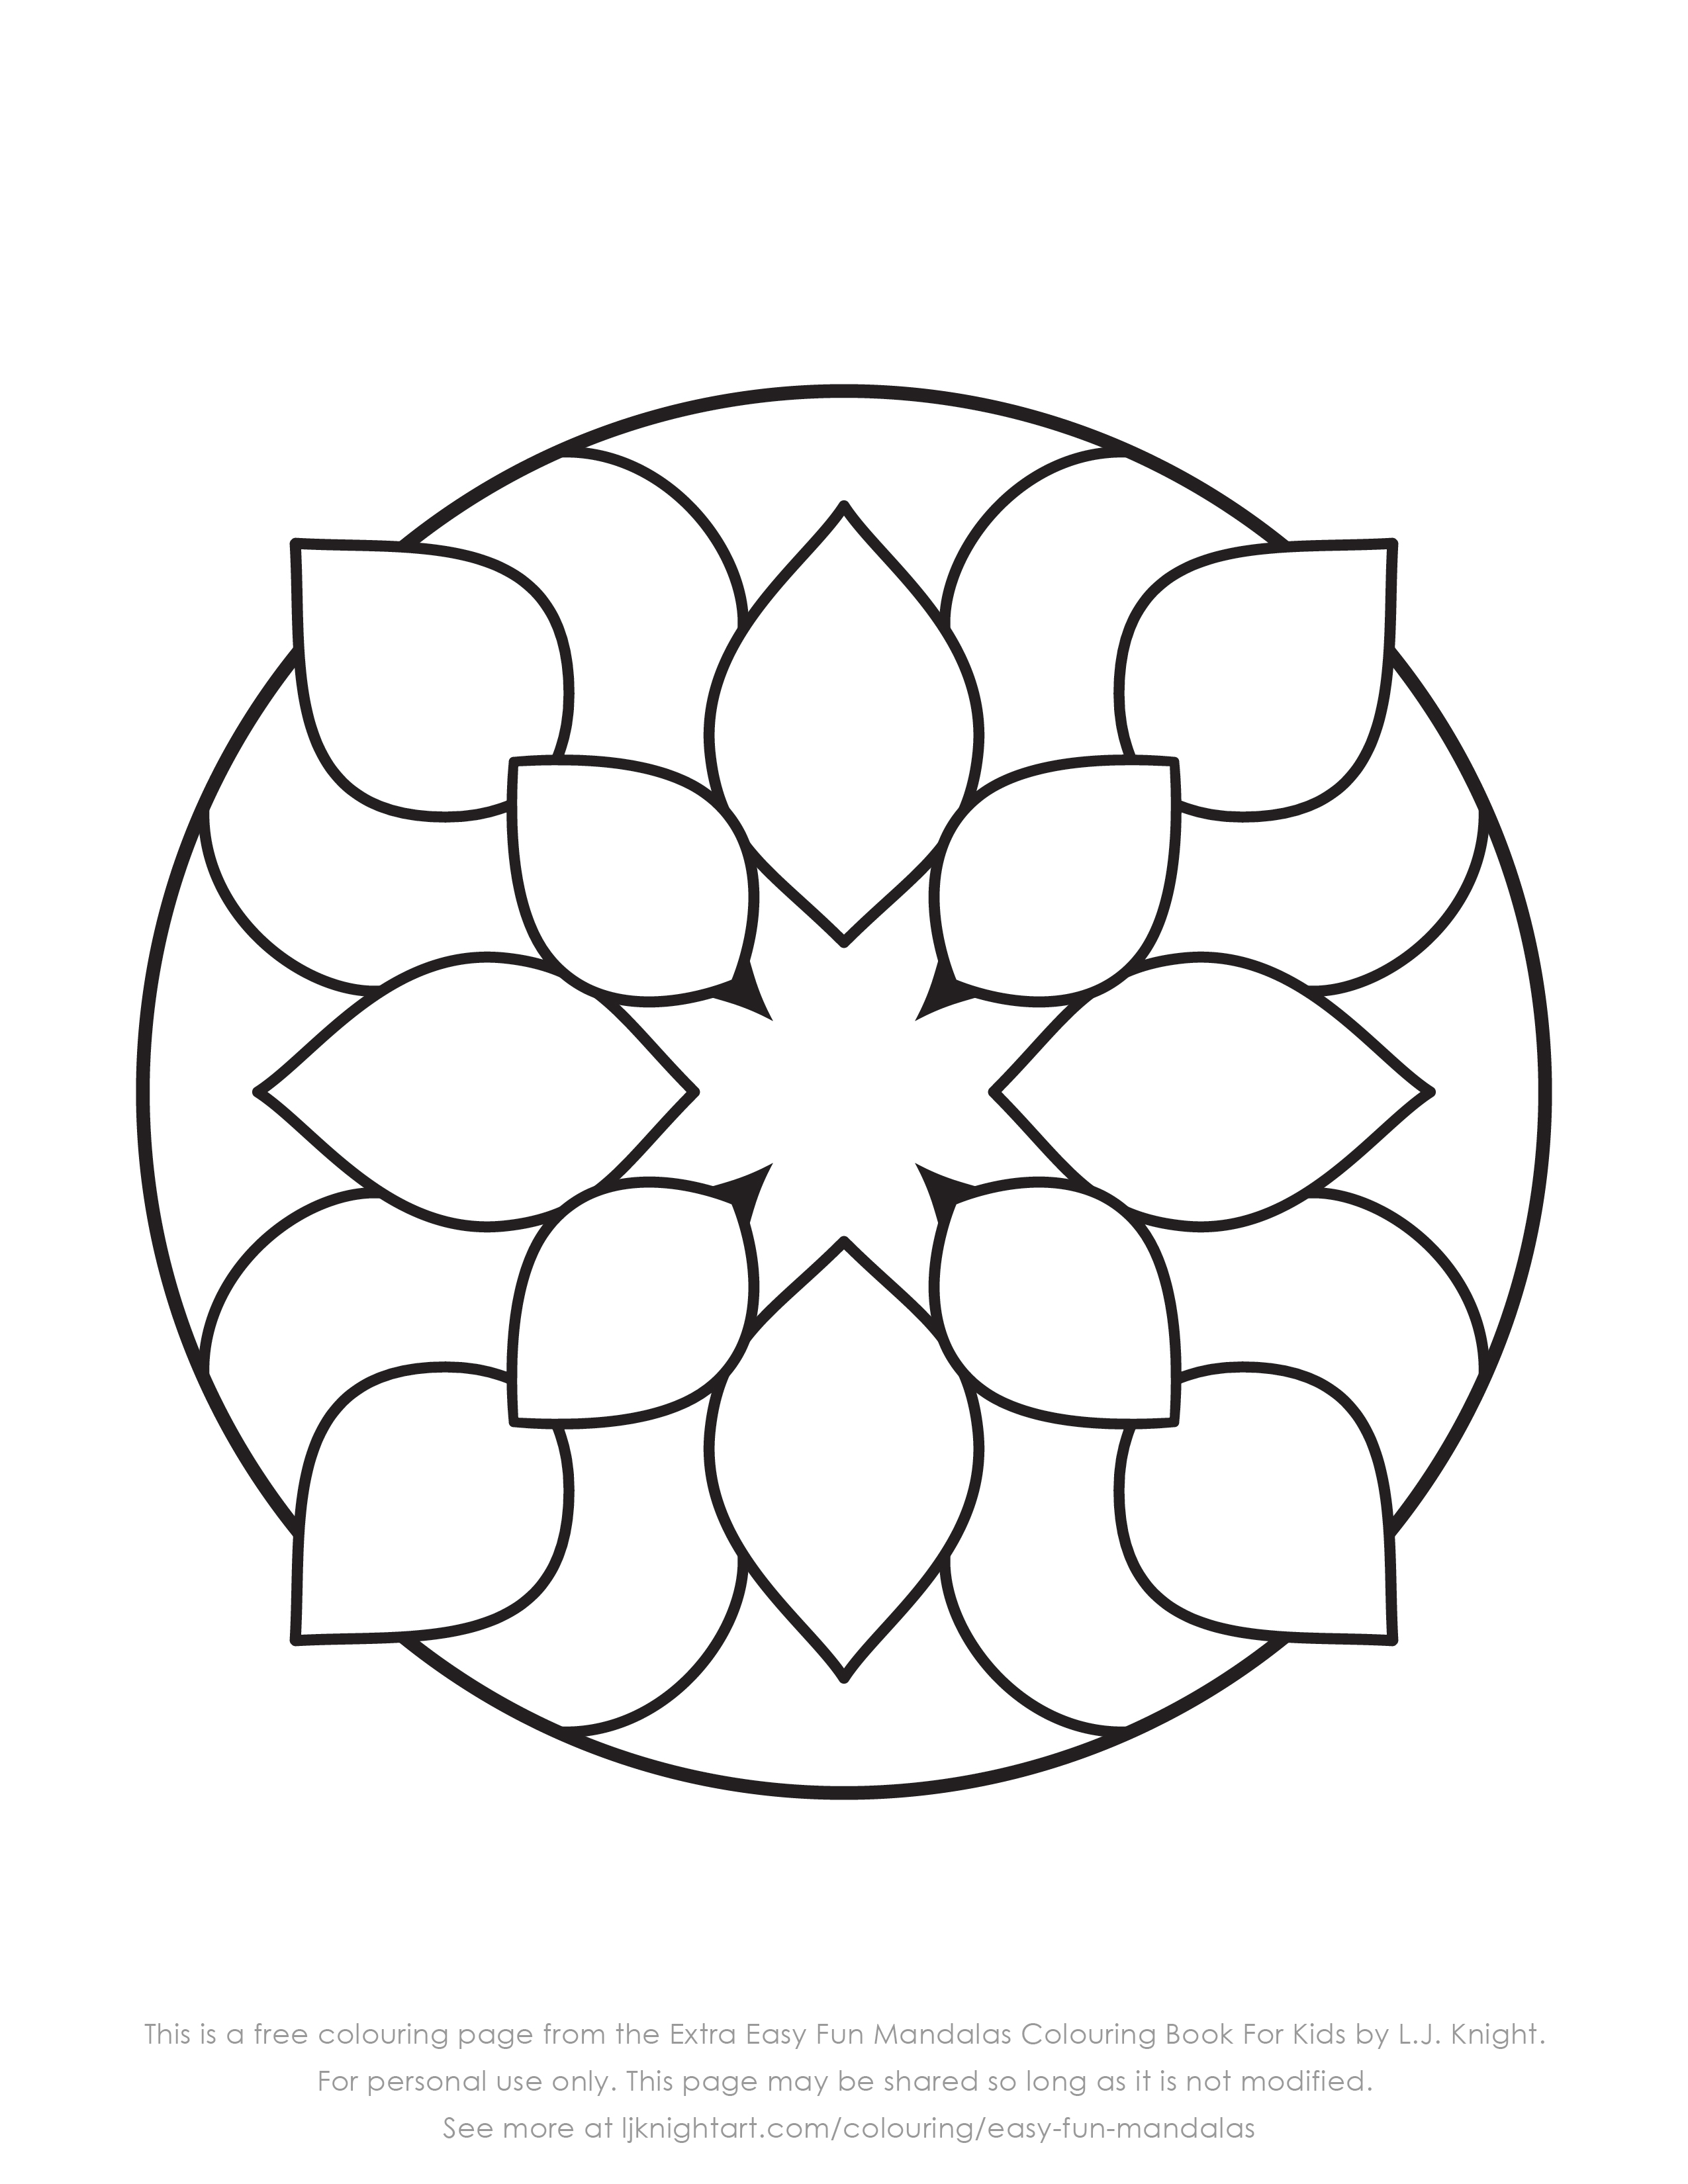 free very simple mandala colouring page for kids download l j knight. Black Bedroom Furniture Sets. Home Design Ideas